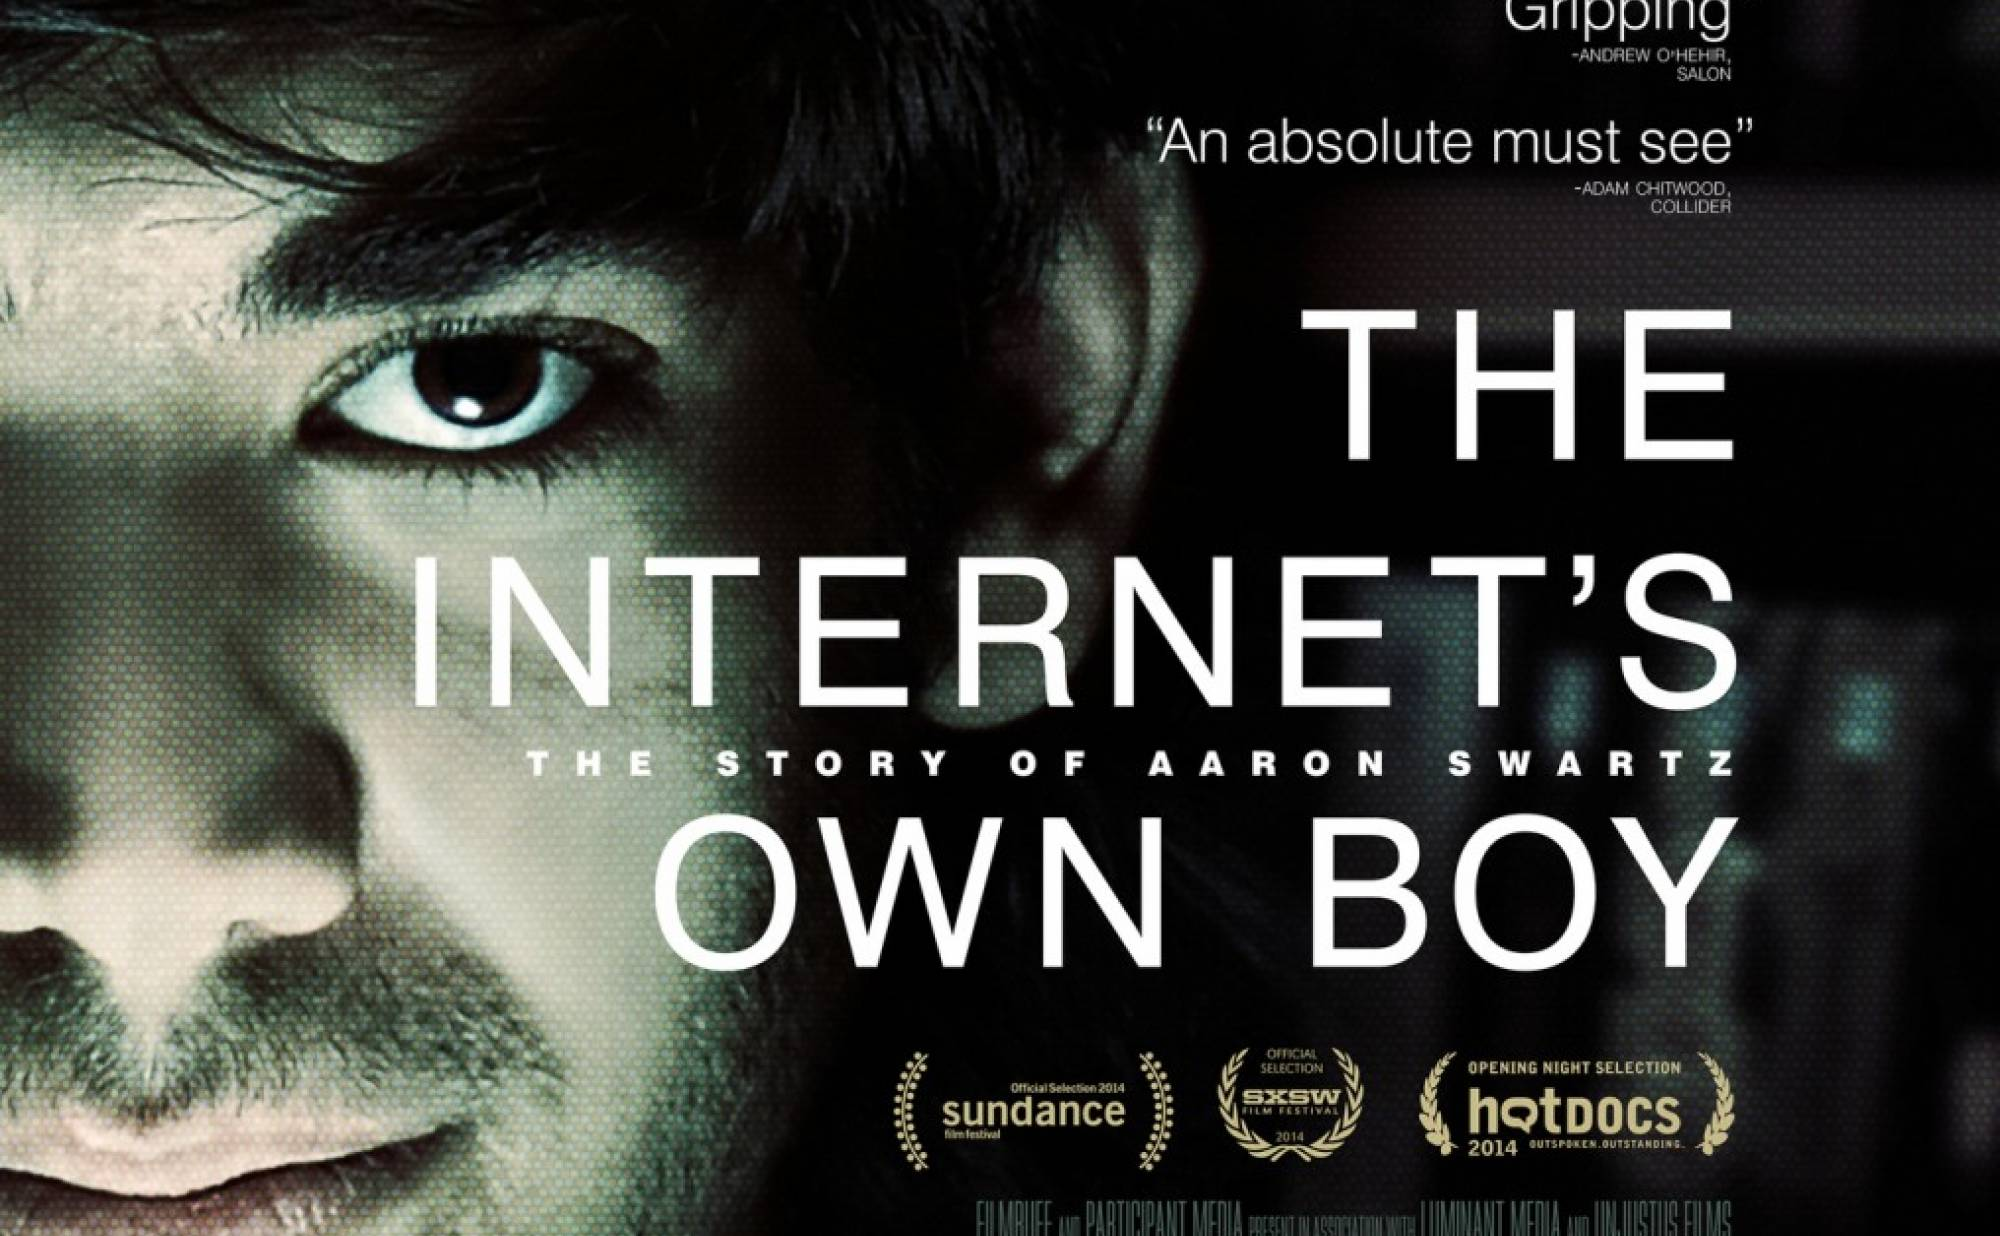 The life and legend of Aaron Swartz